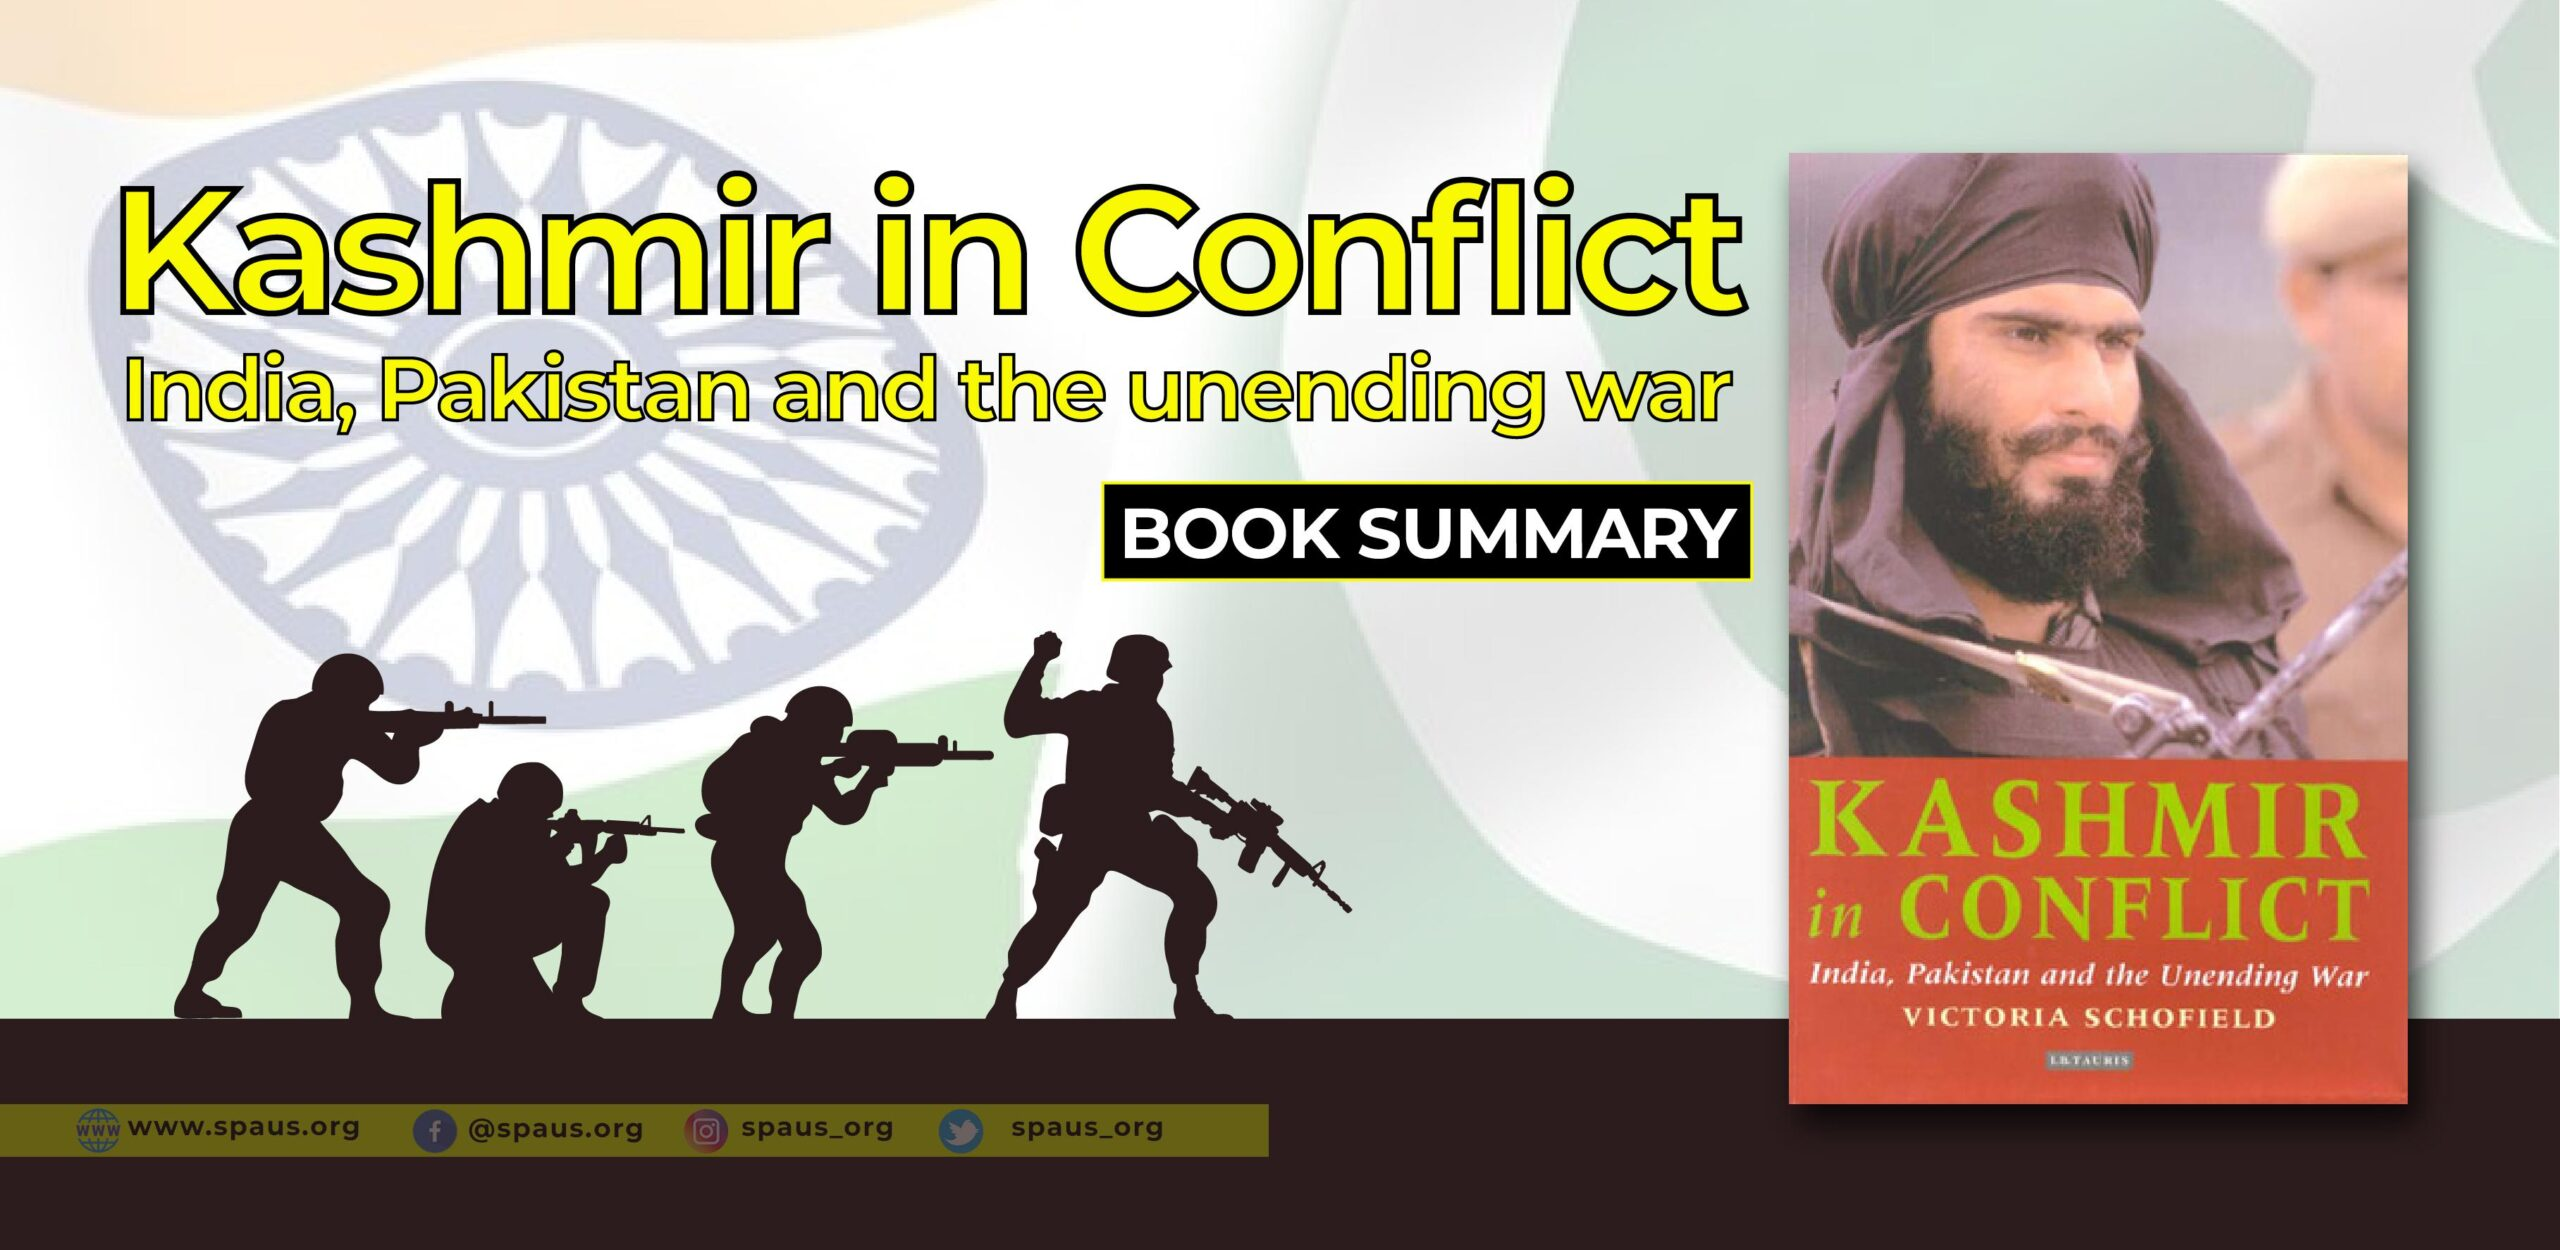 Kashmir in Conflict: India, Pakistan and the unending war by Victoria Schofield